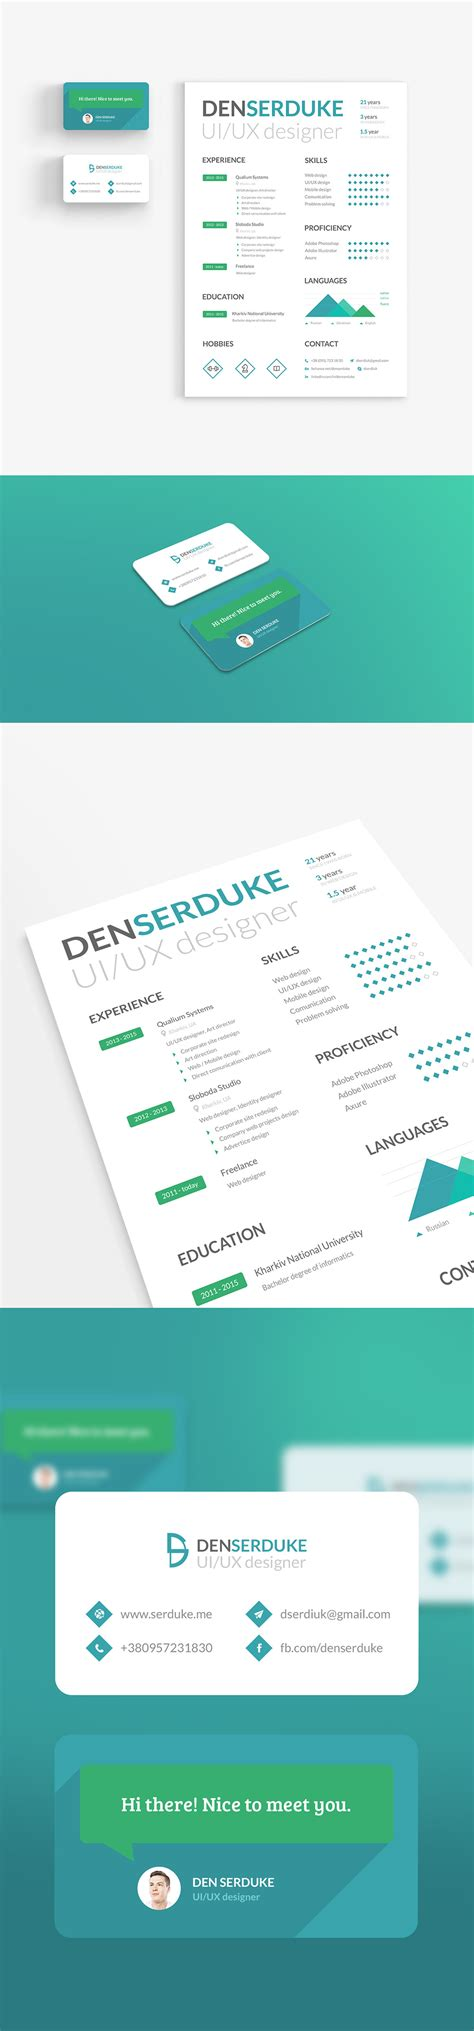 free networking card templates 20 free business card templates psd psd